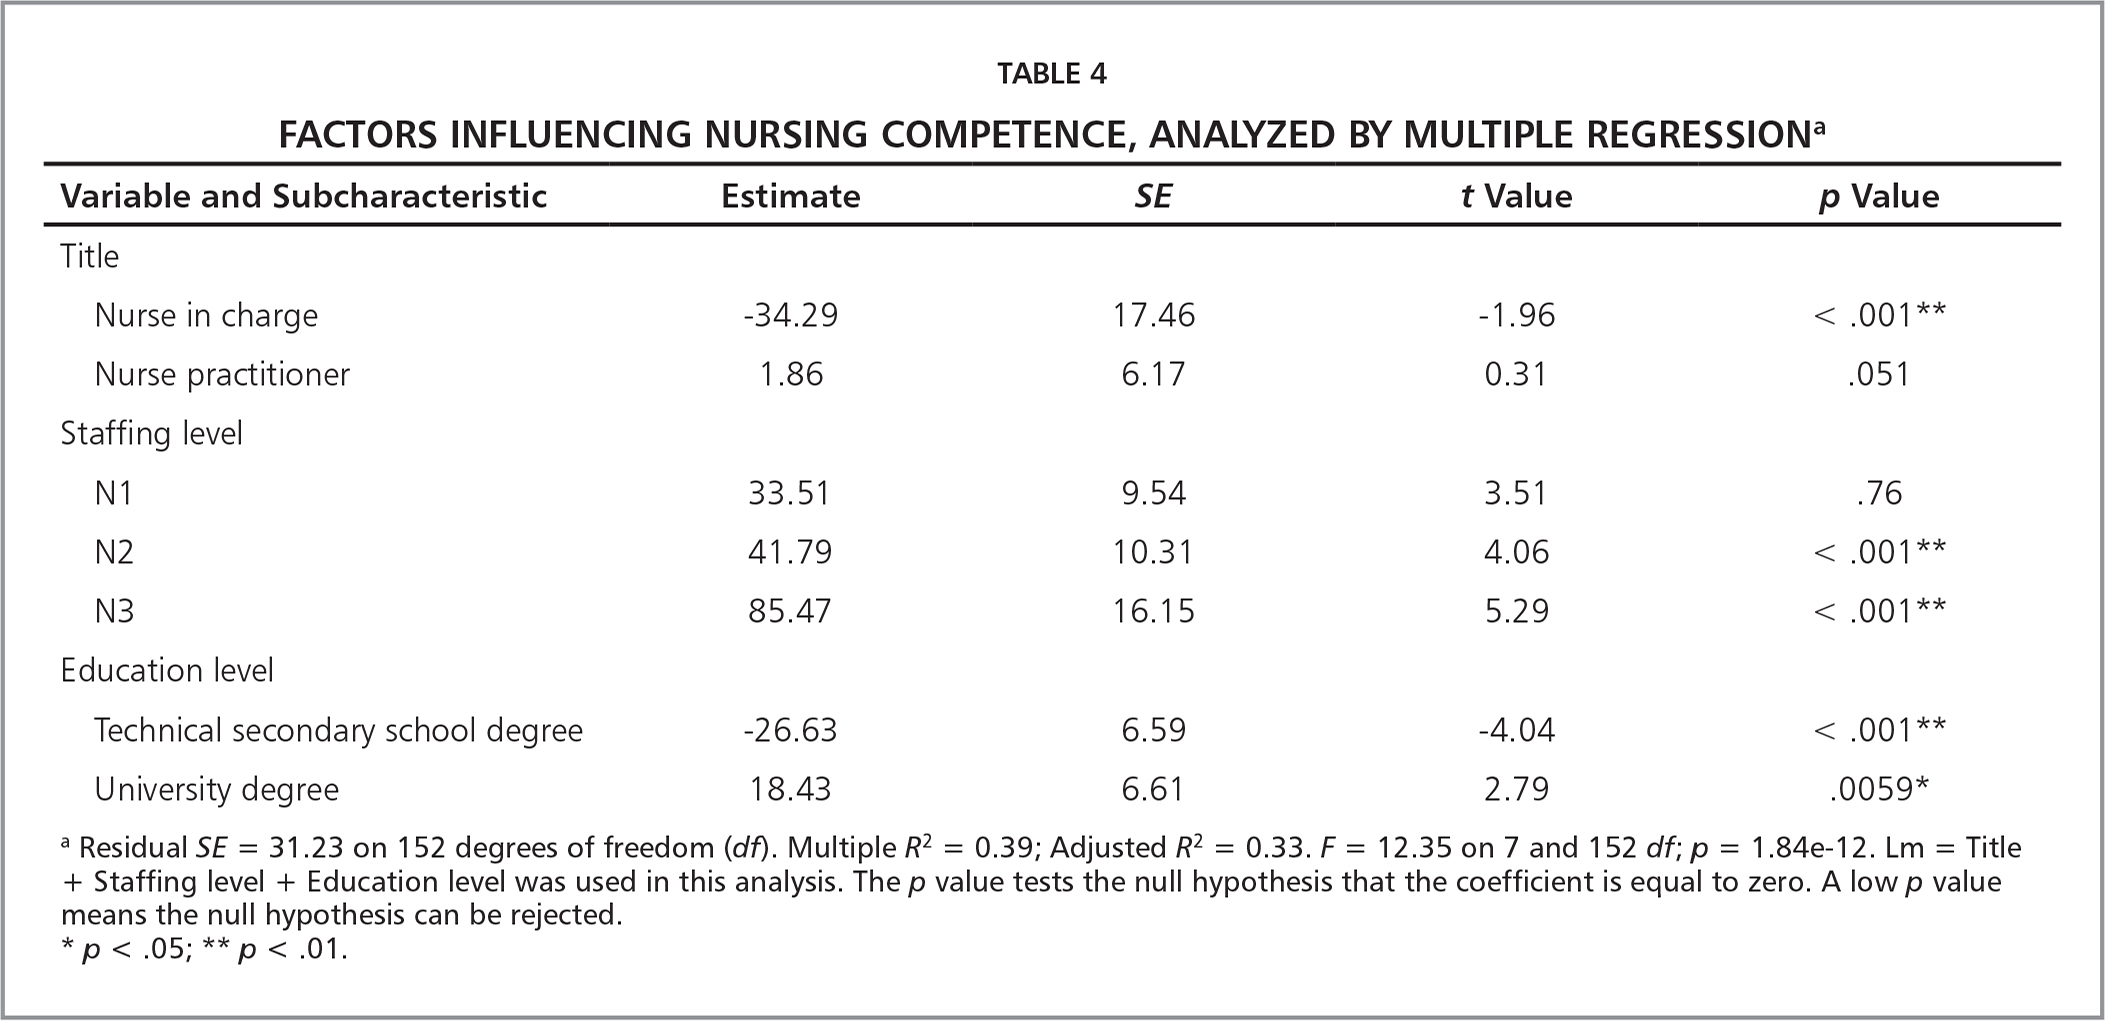 Factors Influencing Nursing Competence, Analyzed by Multiple Regressiona